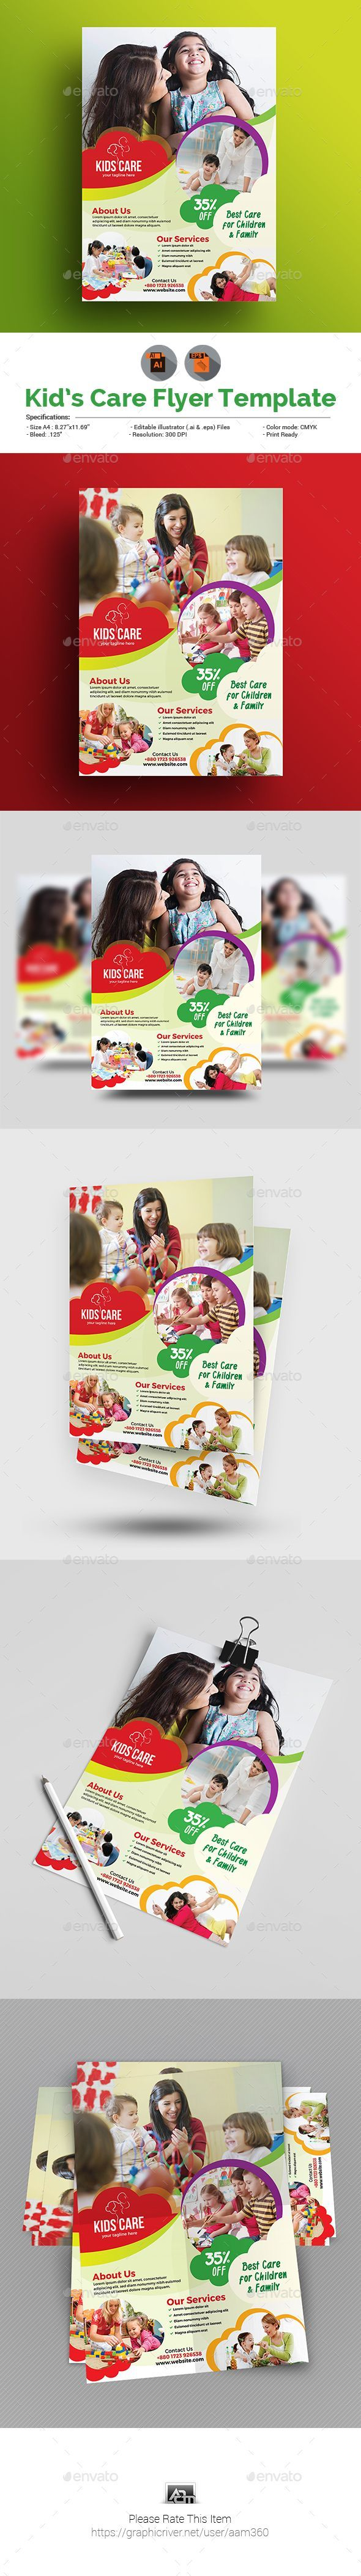 Child Care Flyer Template Vector EPS, AI Illustrator #ecohouseposter